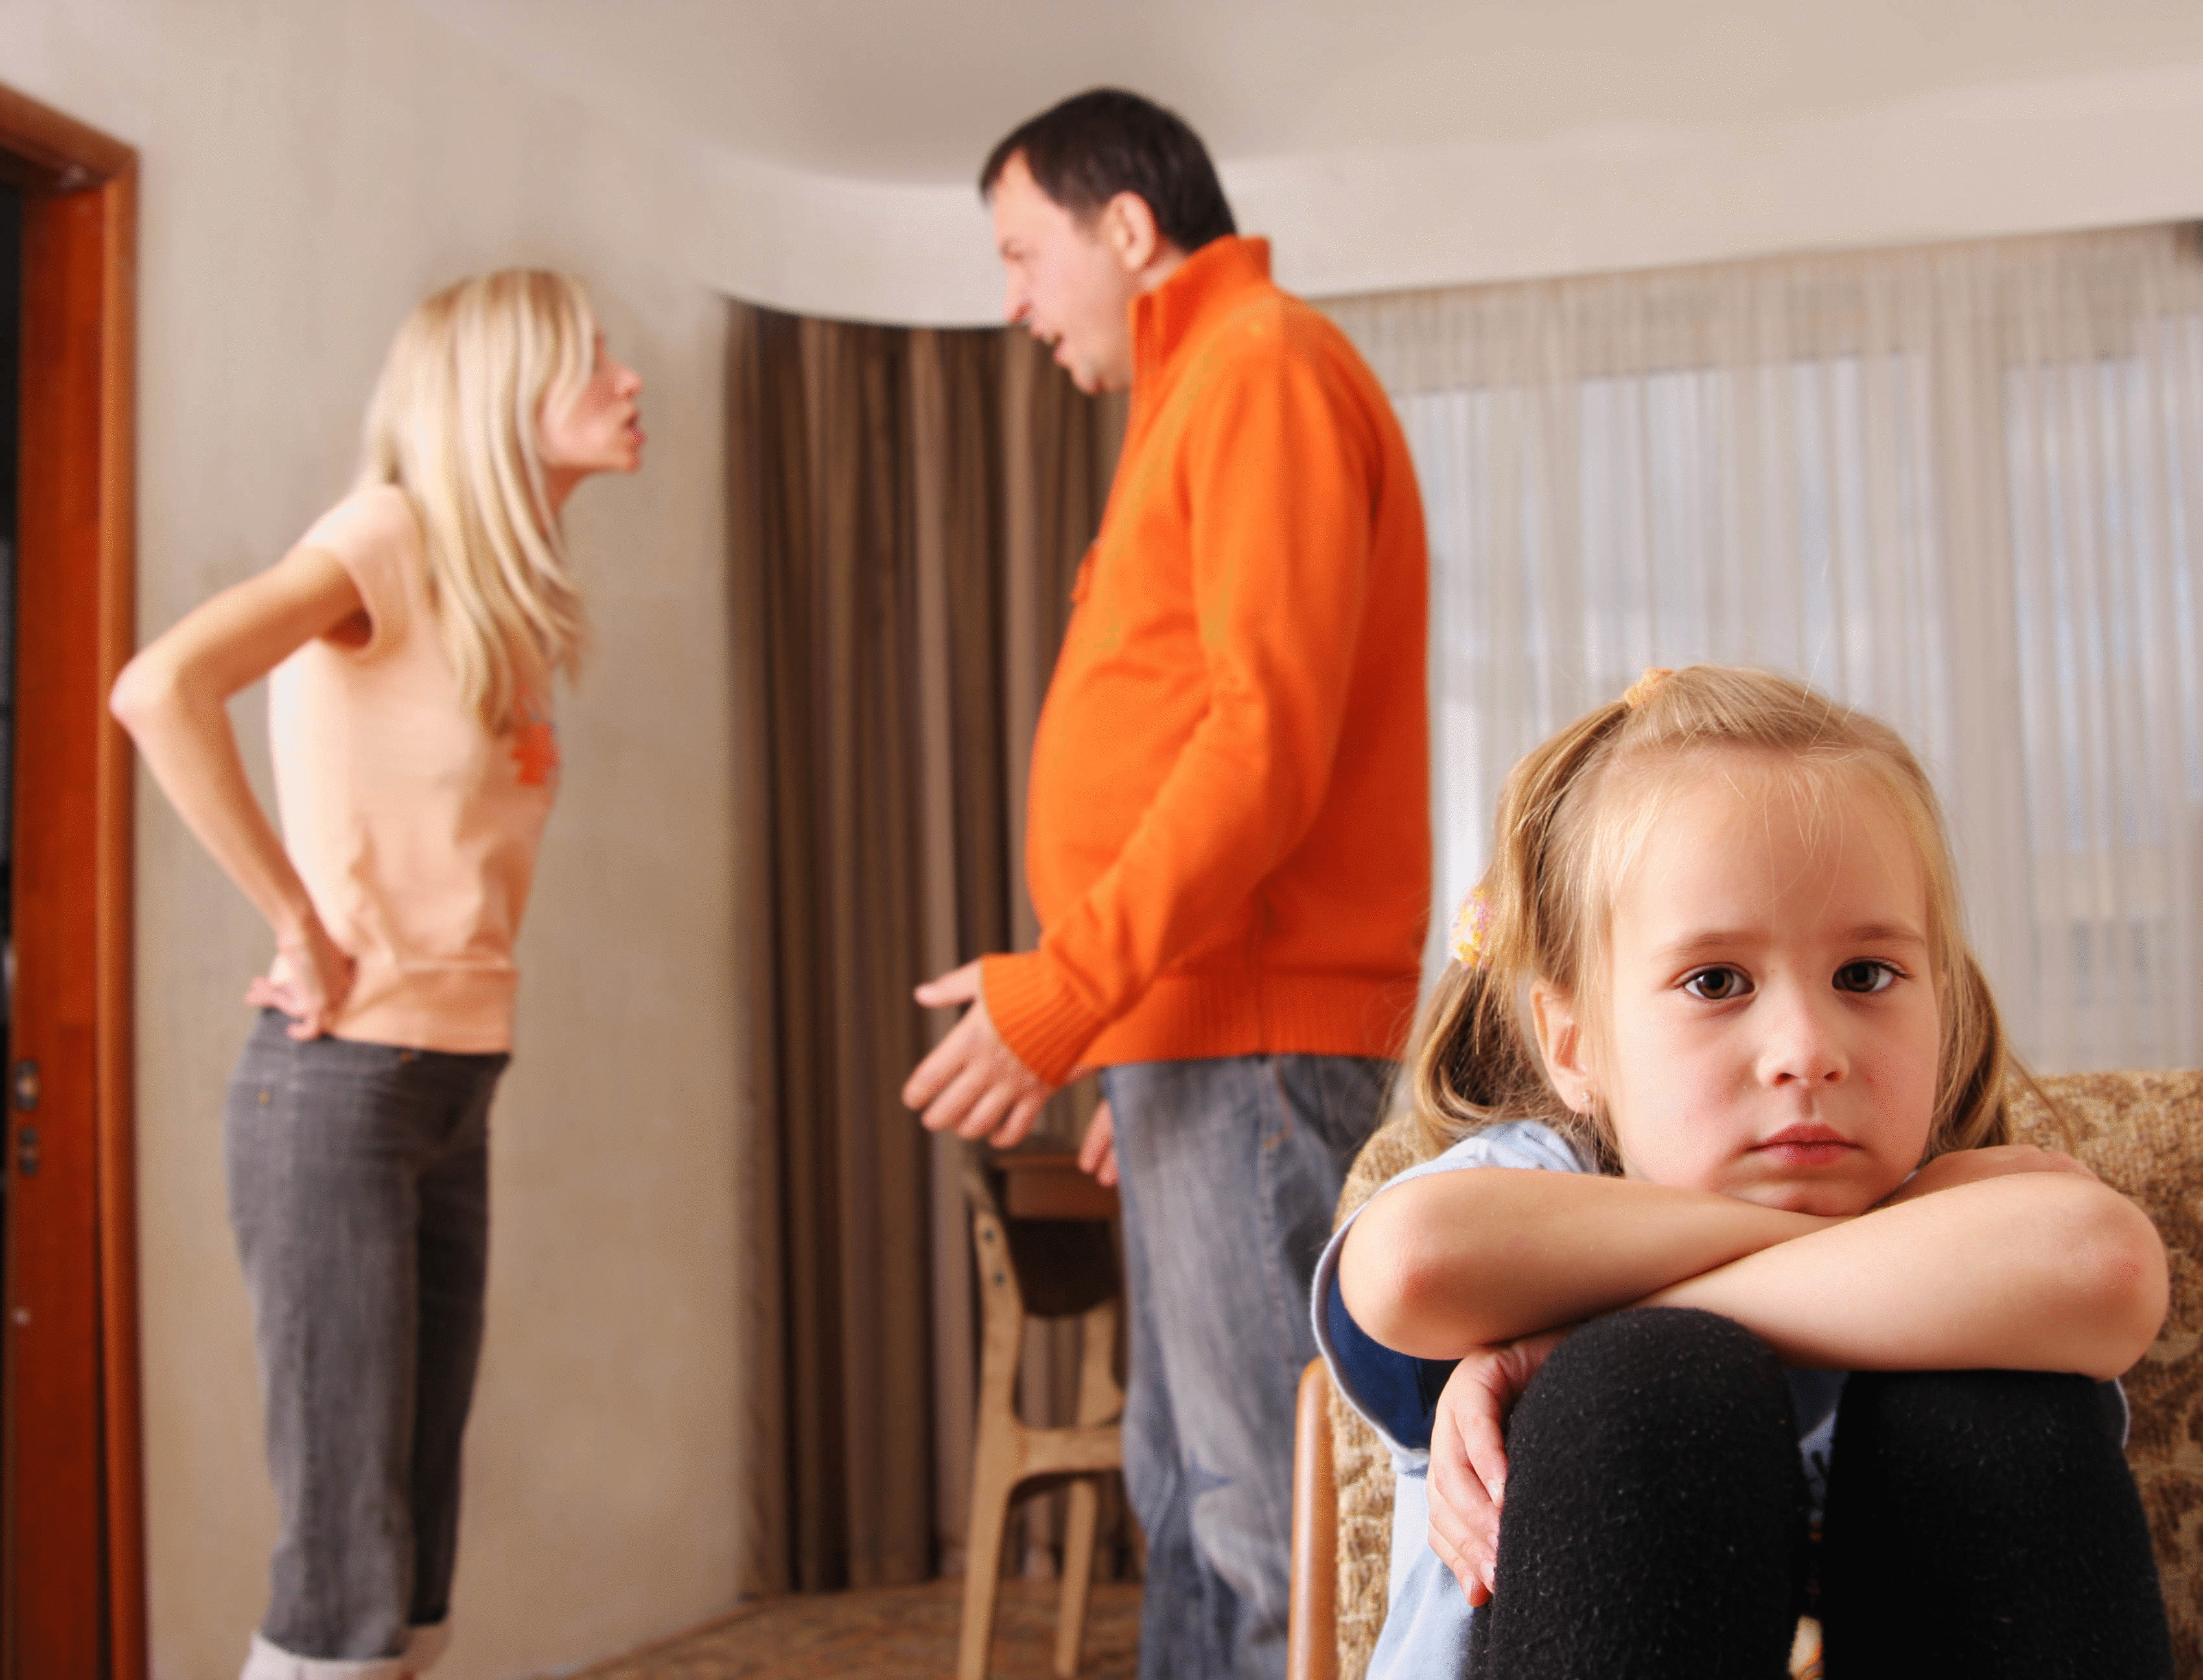 divorce family and best parents Parents often experience guilt around divorce because their relationship has failed and they worry about the effect on their children hostility in the home it is good for parents or kids if parents will be happier living separately, they will likely be better able to provide positive support their family.